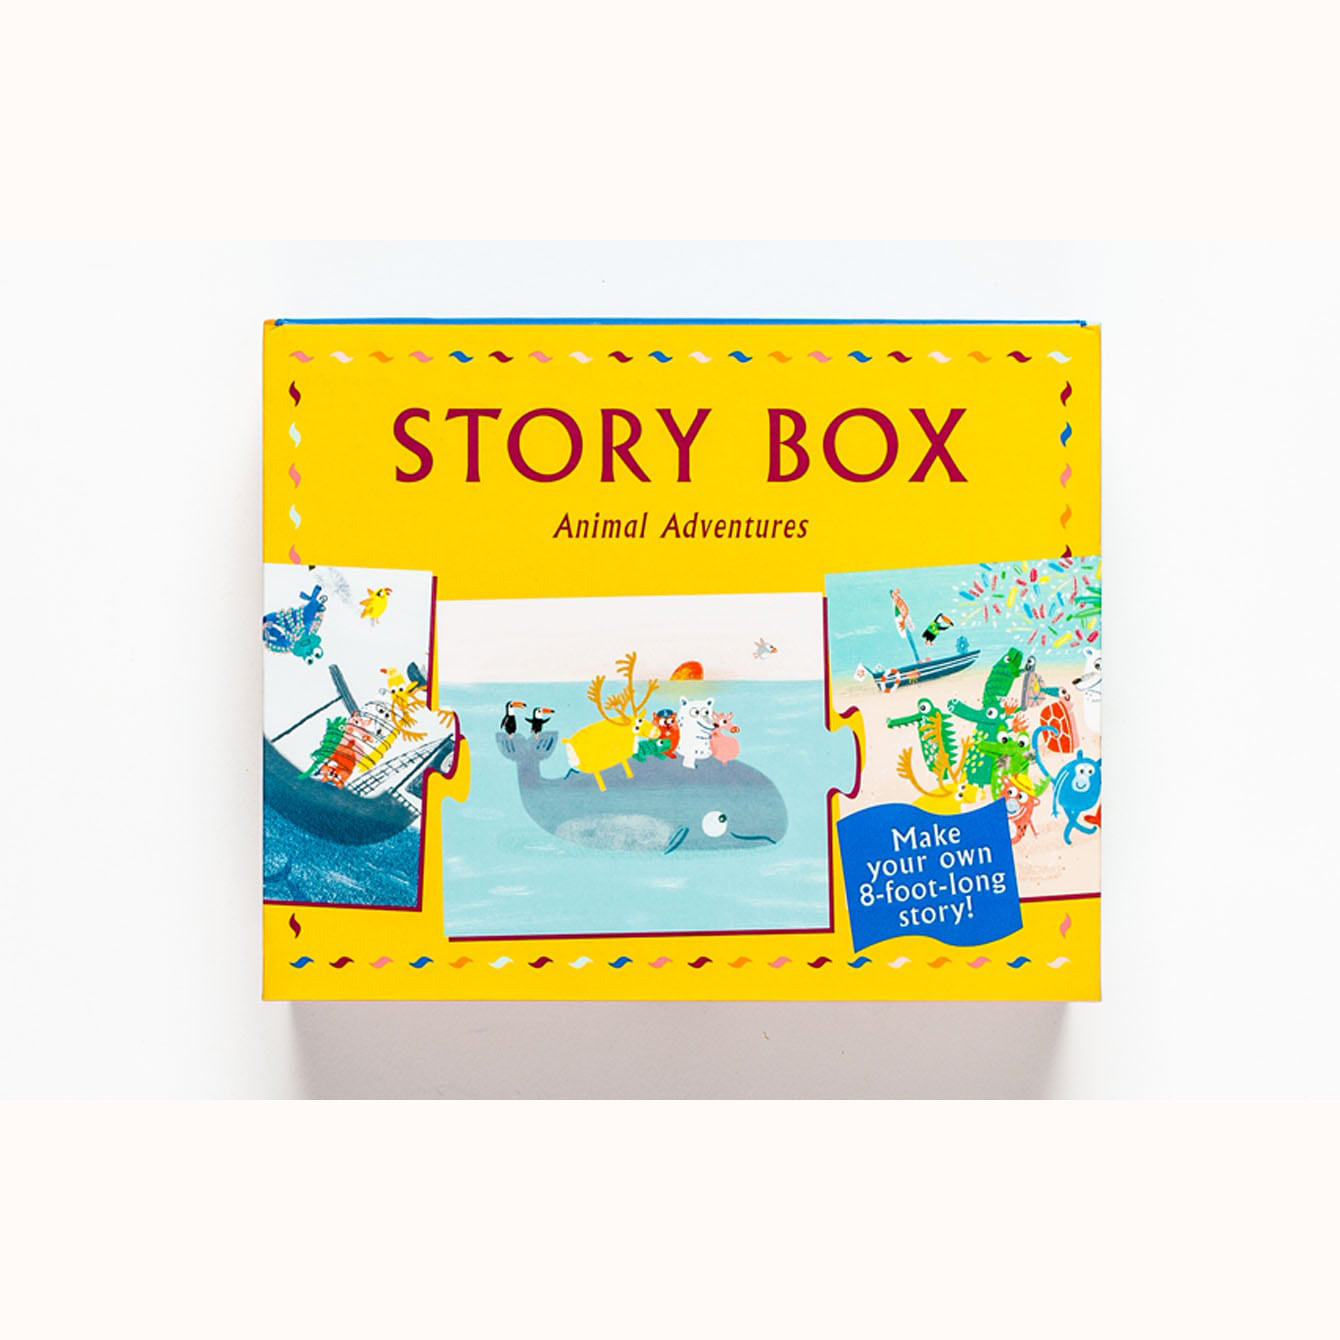 Story Box - Animal Adventures, front of box